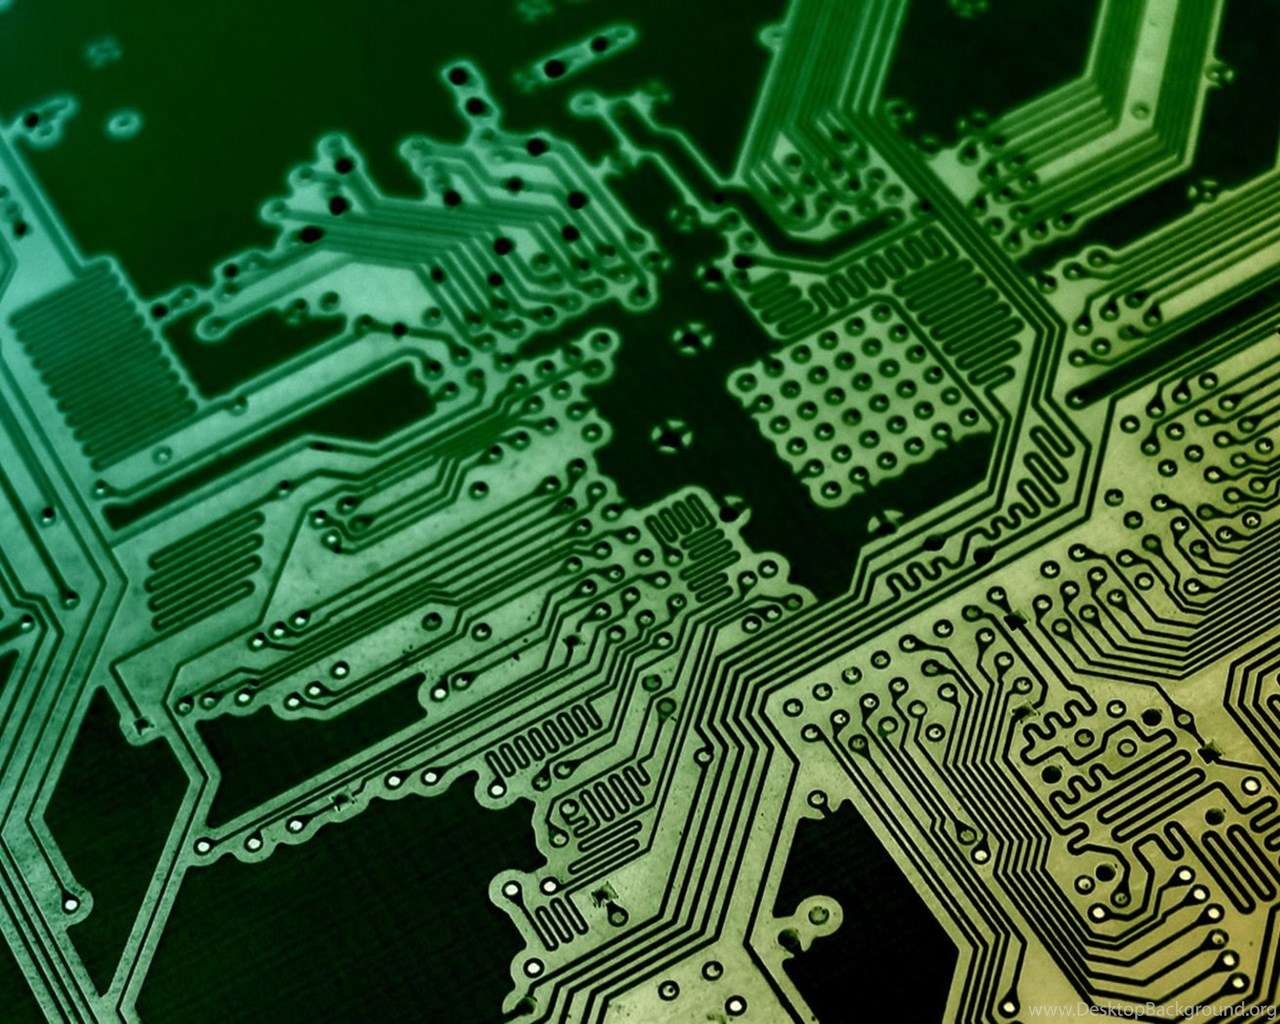 Electronics Circuit Wallpapers Desktop Wallpaper Digital Art 13785 Download Electric Circuits Background 1280x1024